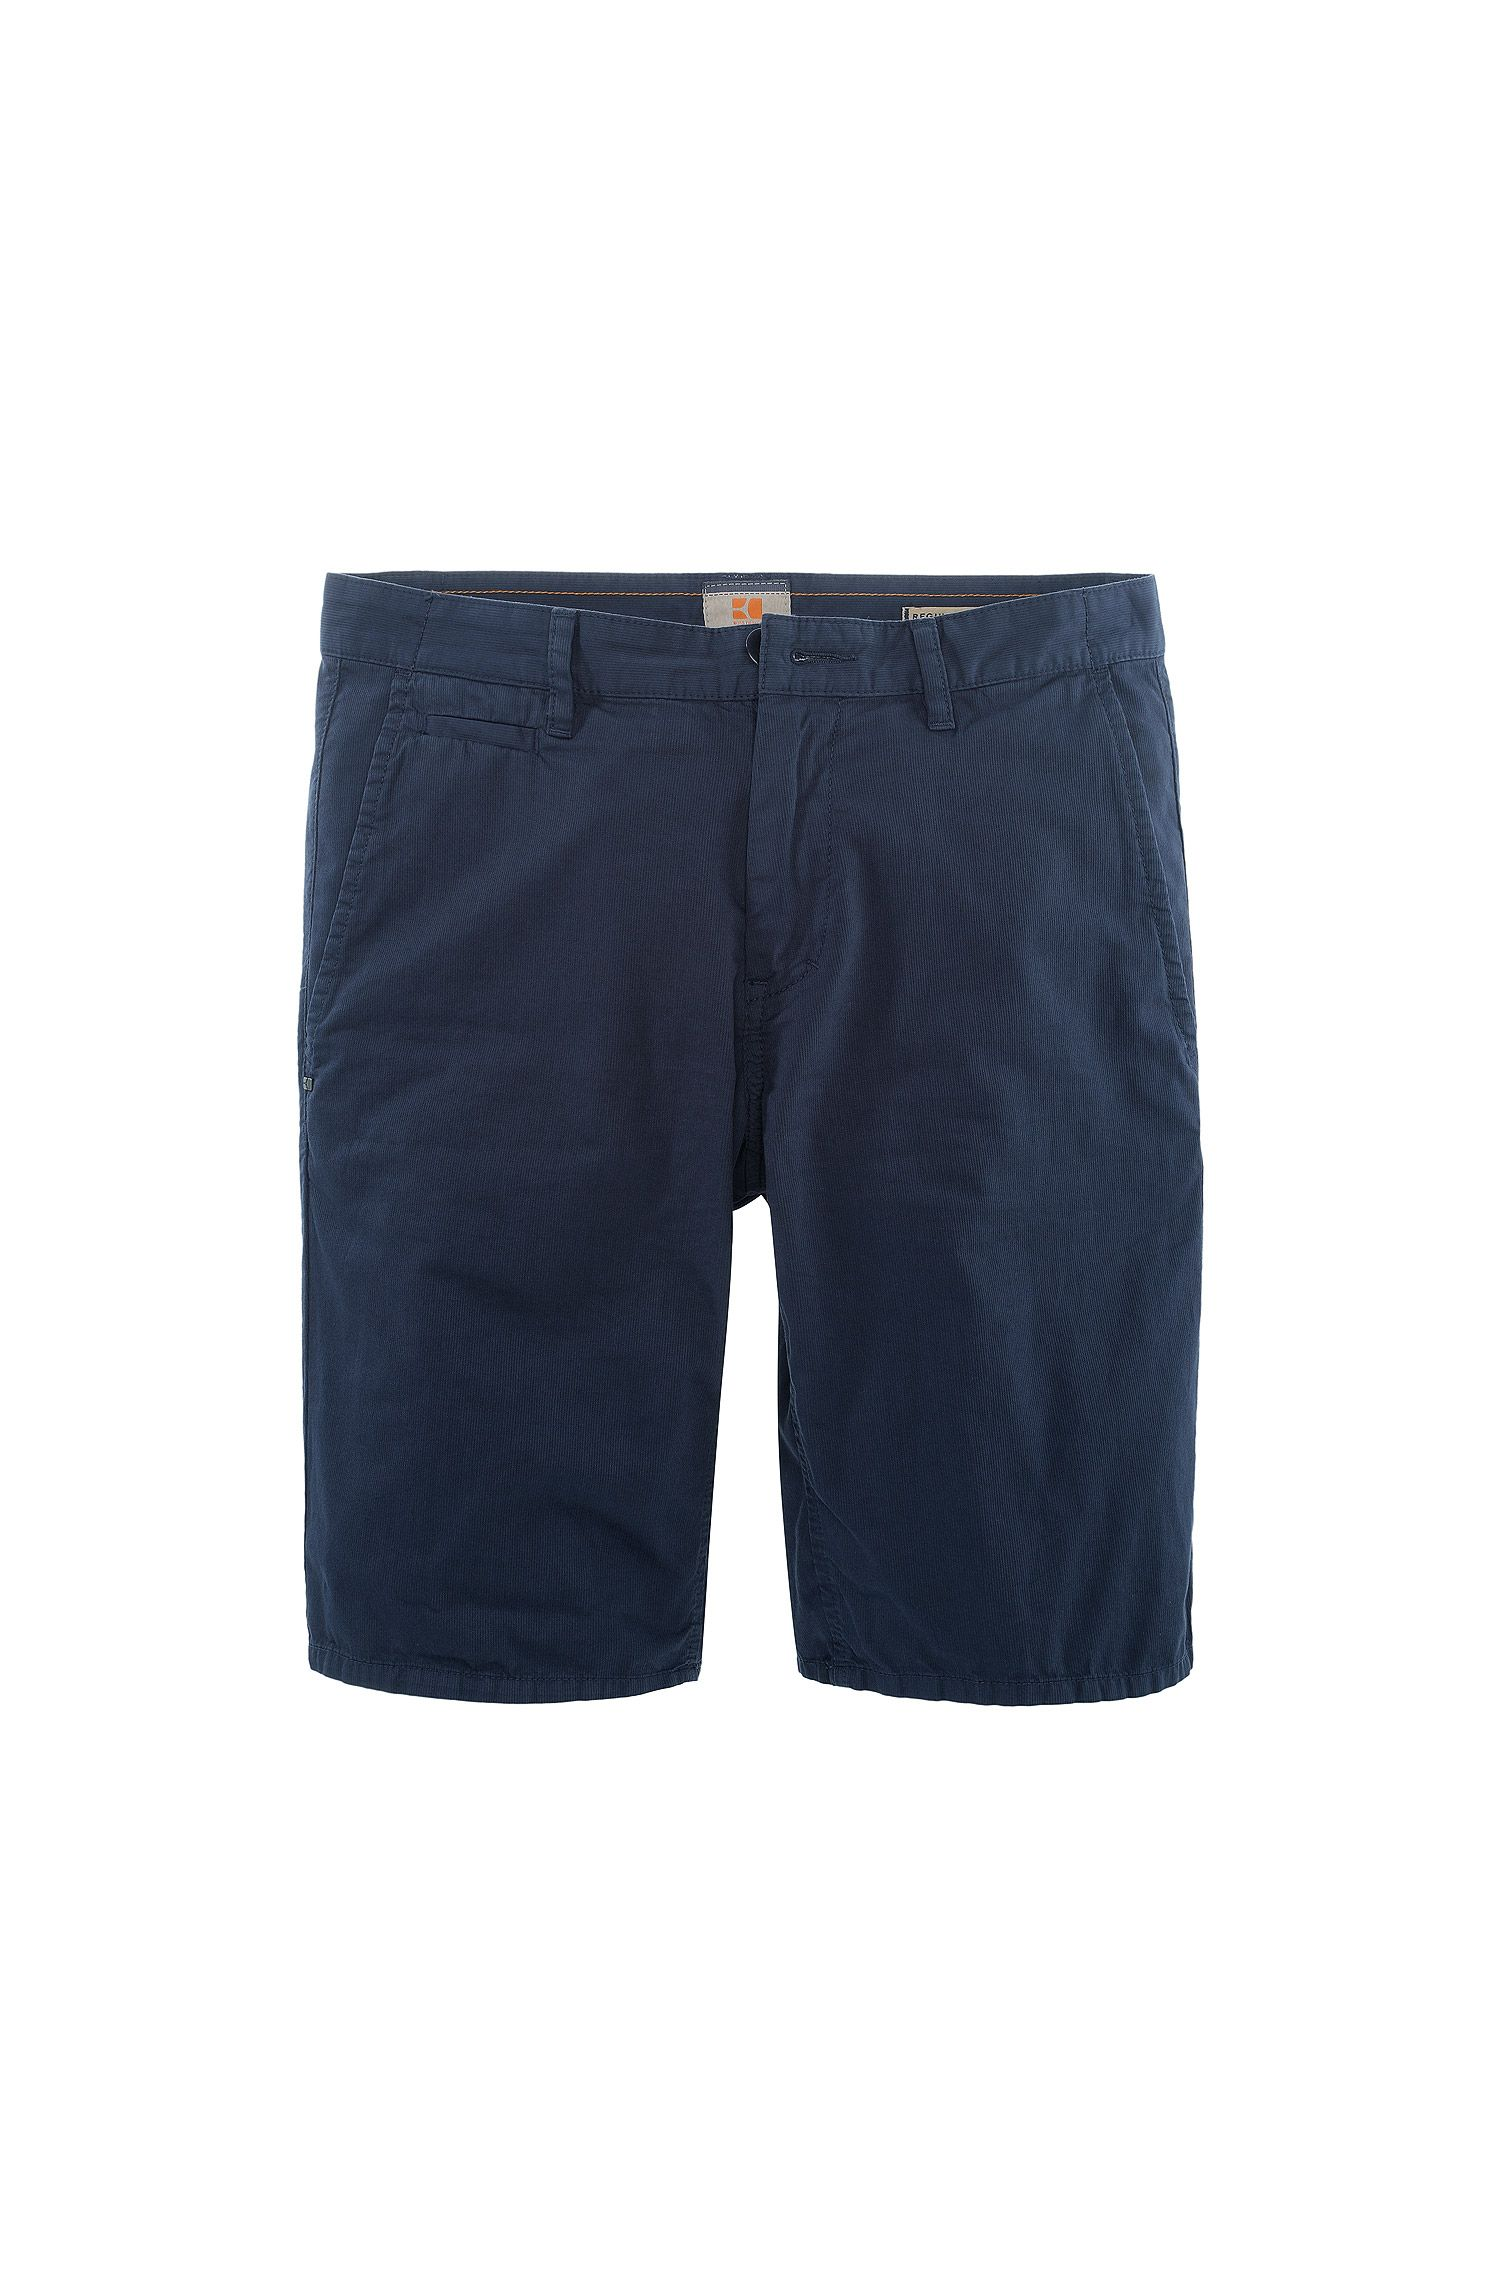 Shorts ´Shure-Shorts-D` (Regular-Fit)